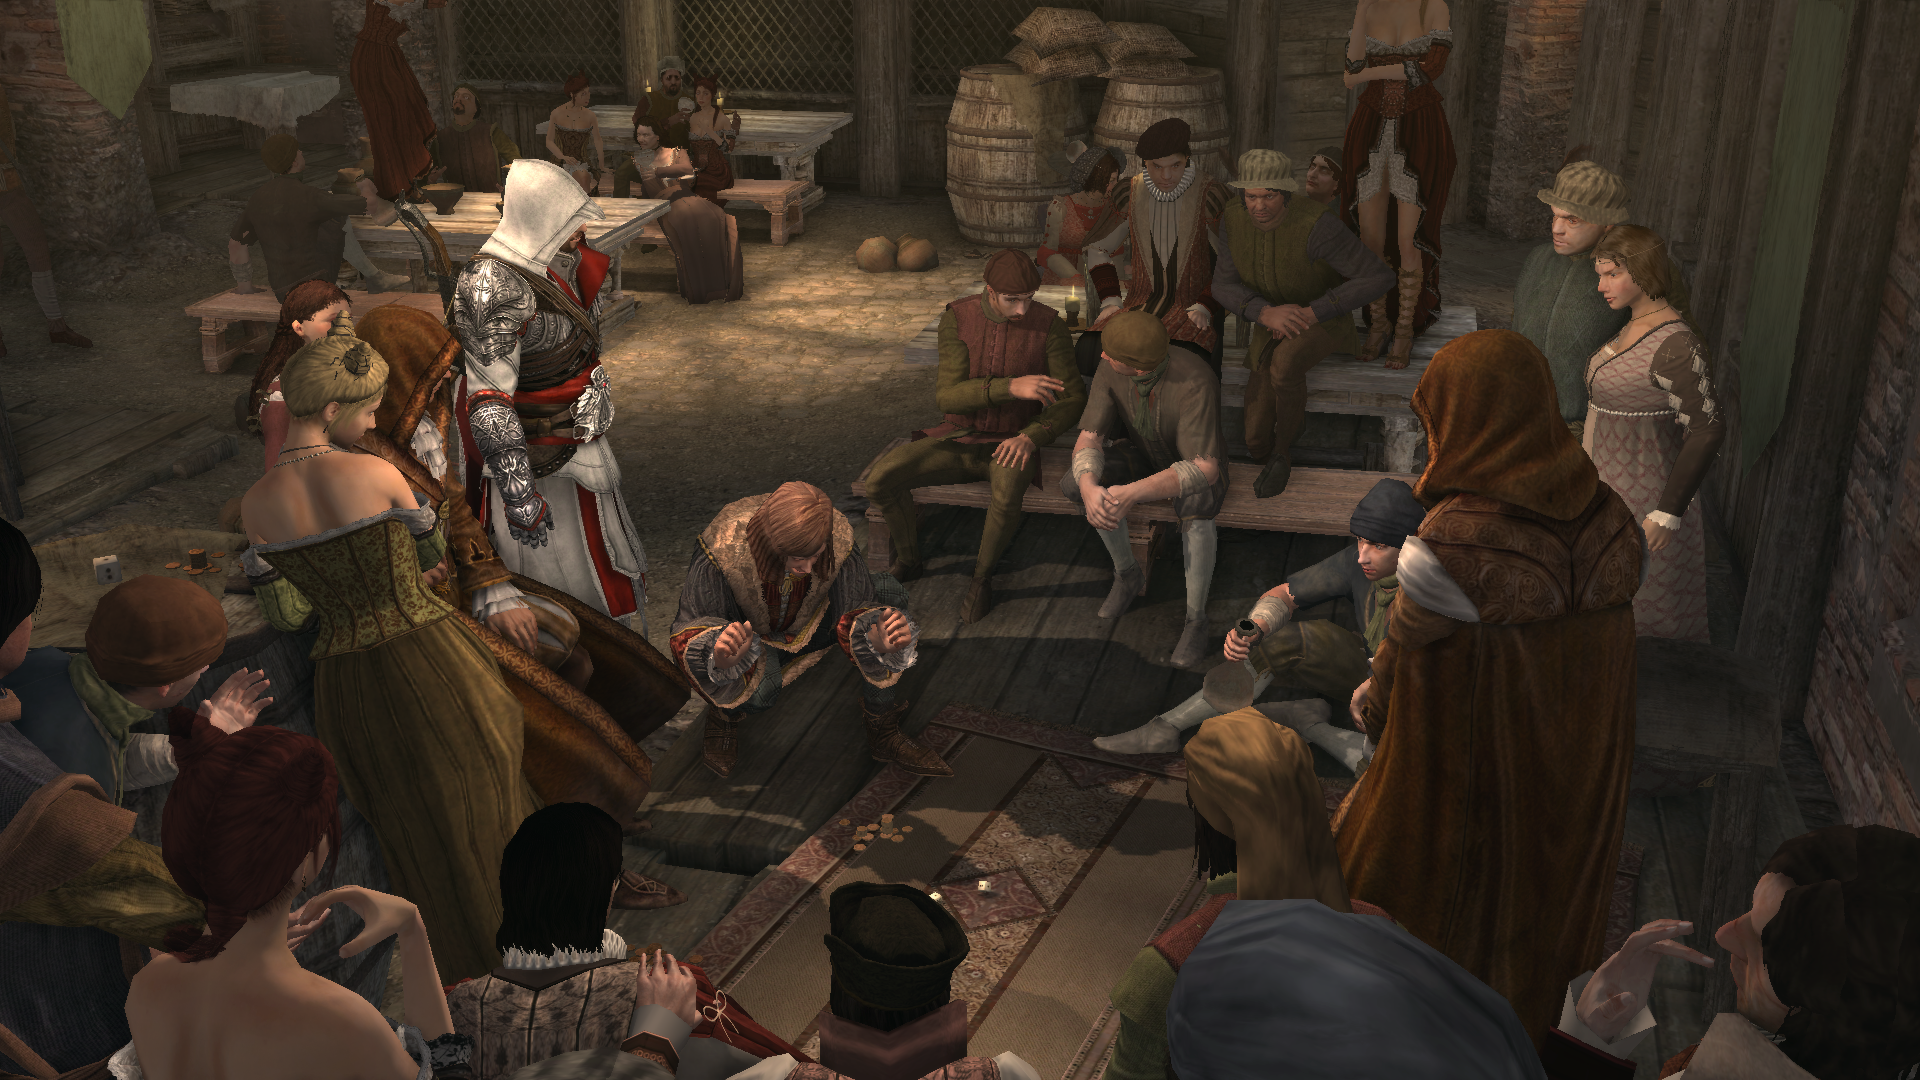 Assassin's creed gambling